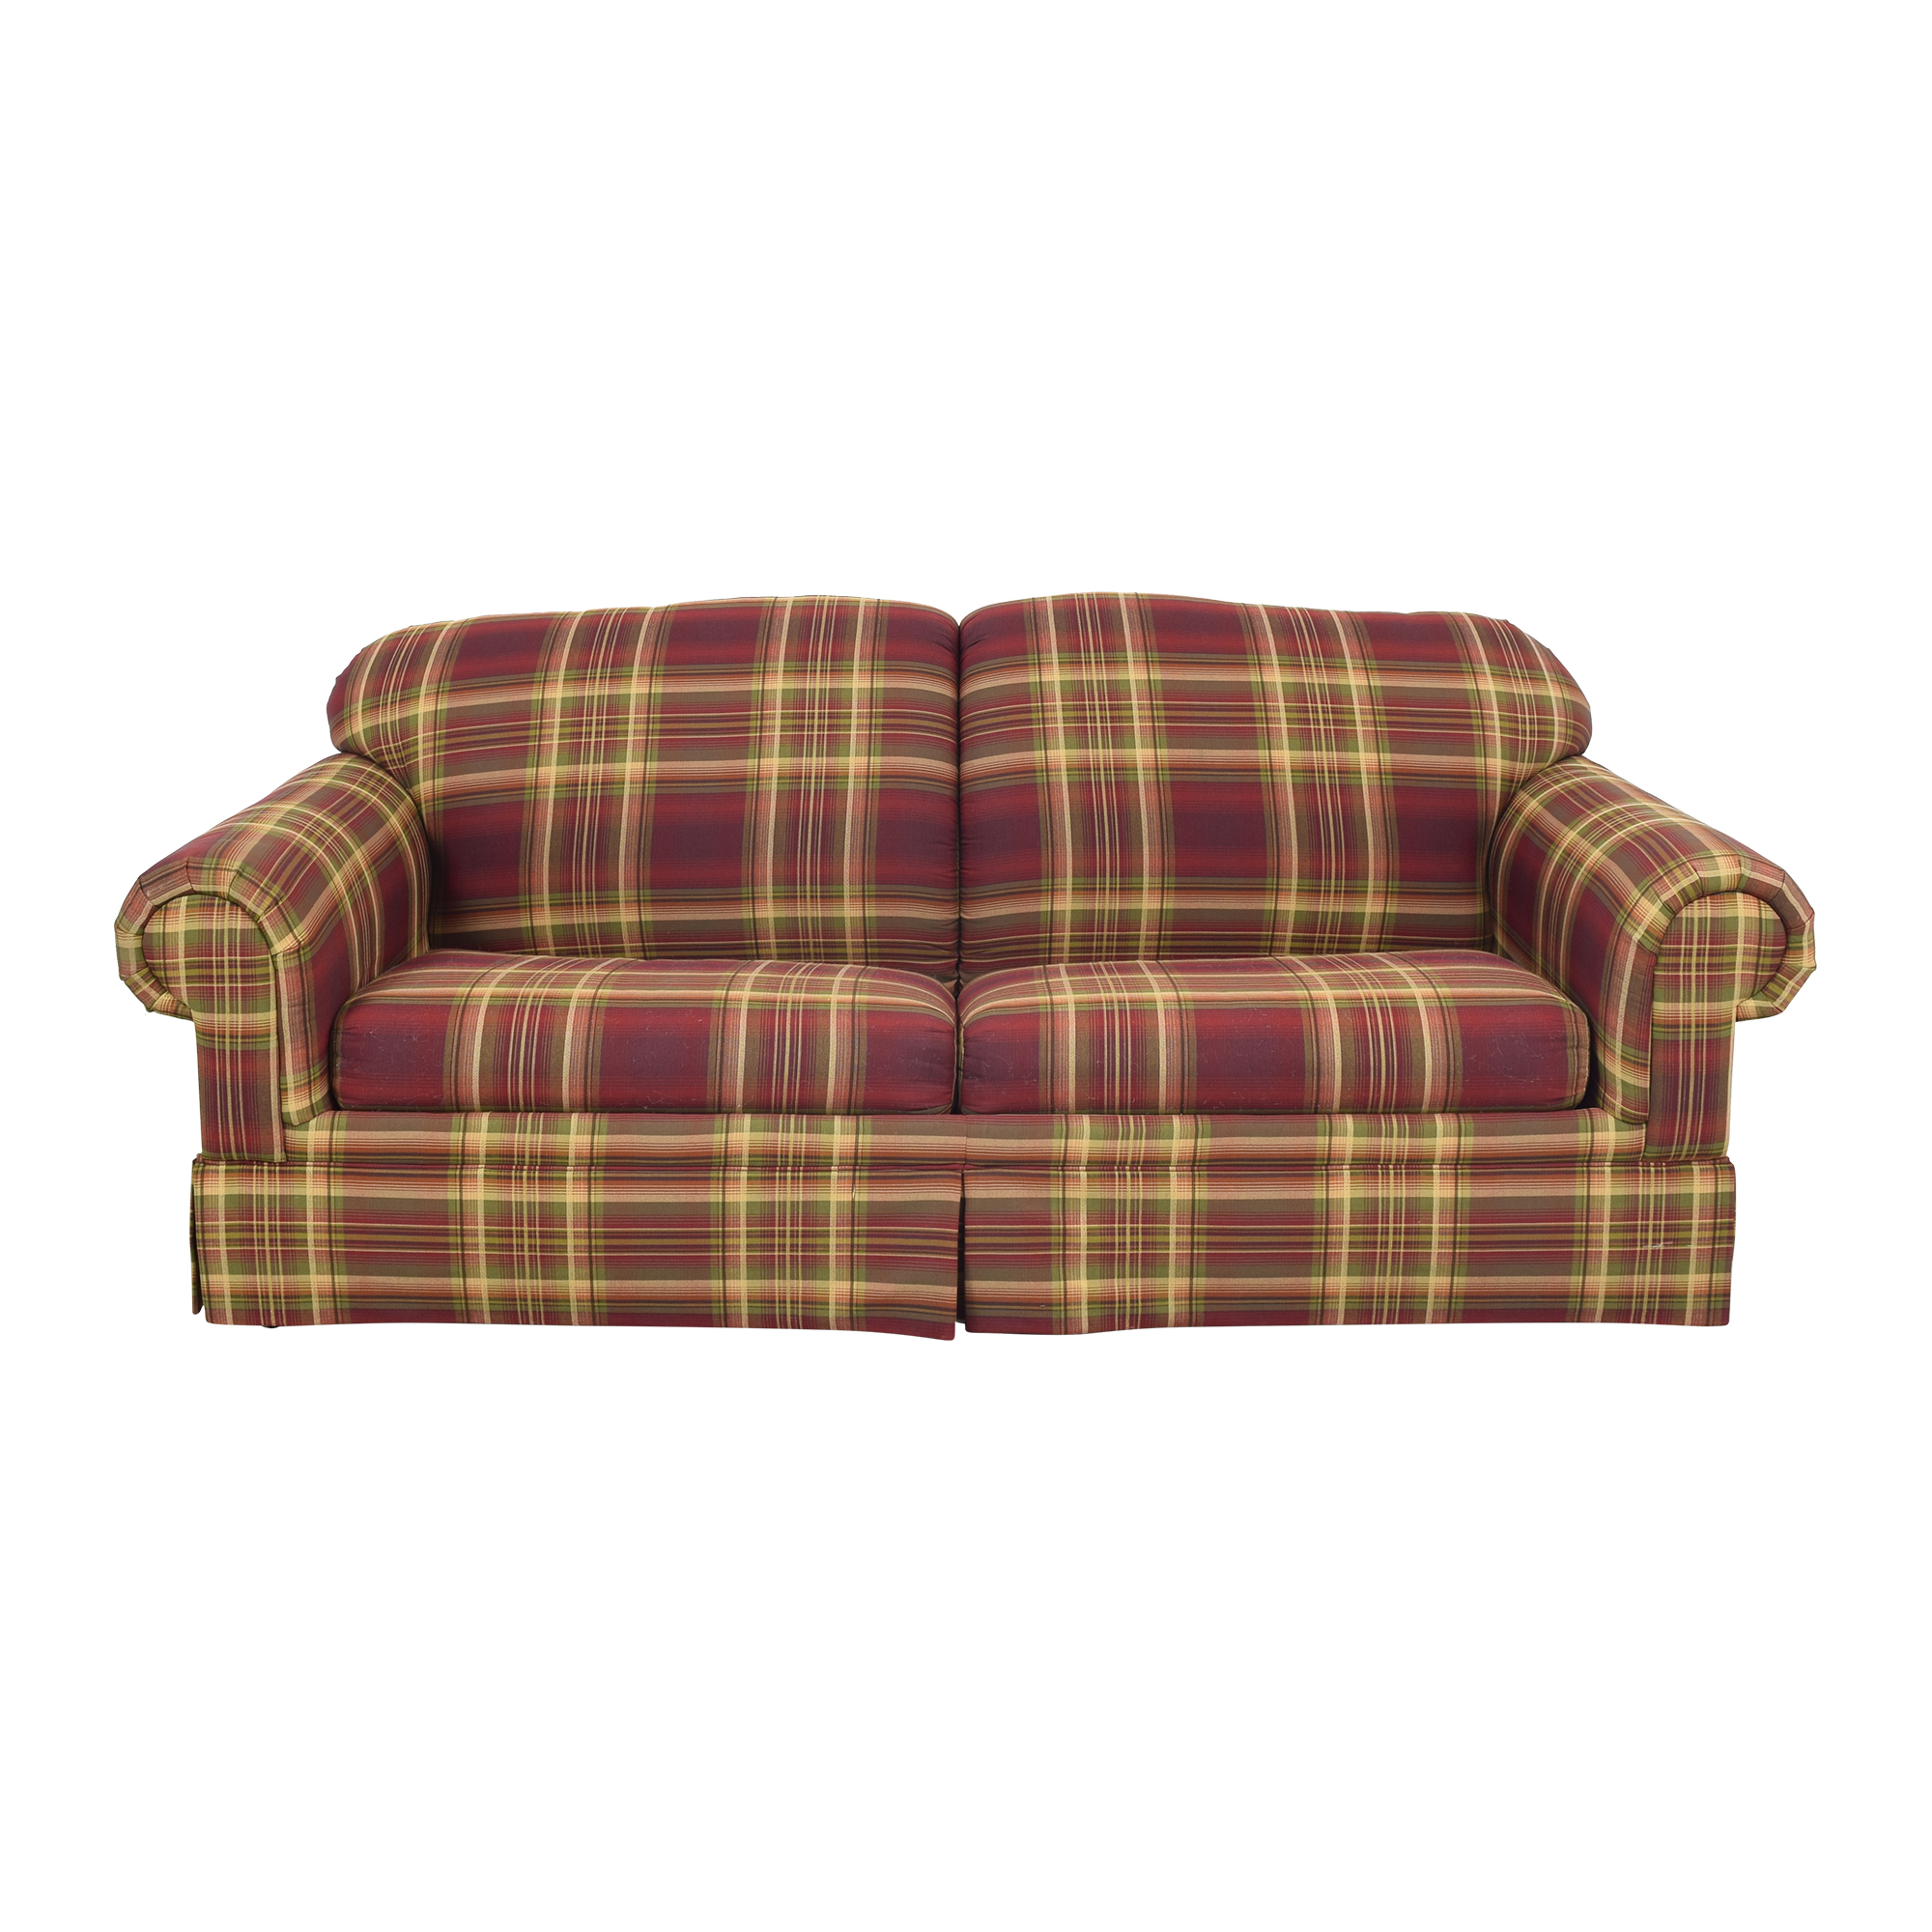 Rowe Furniture Rowe Two Seater Queen Sleeper Sofa price